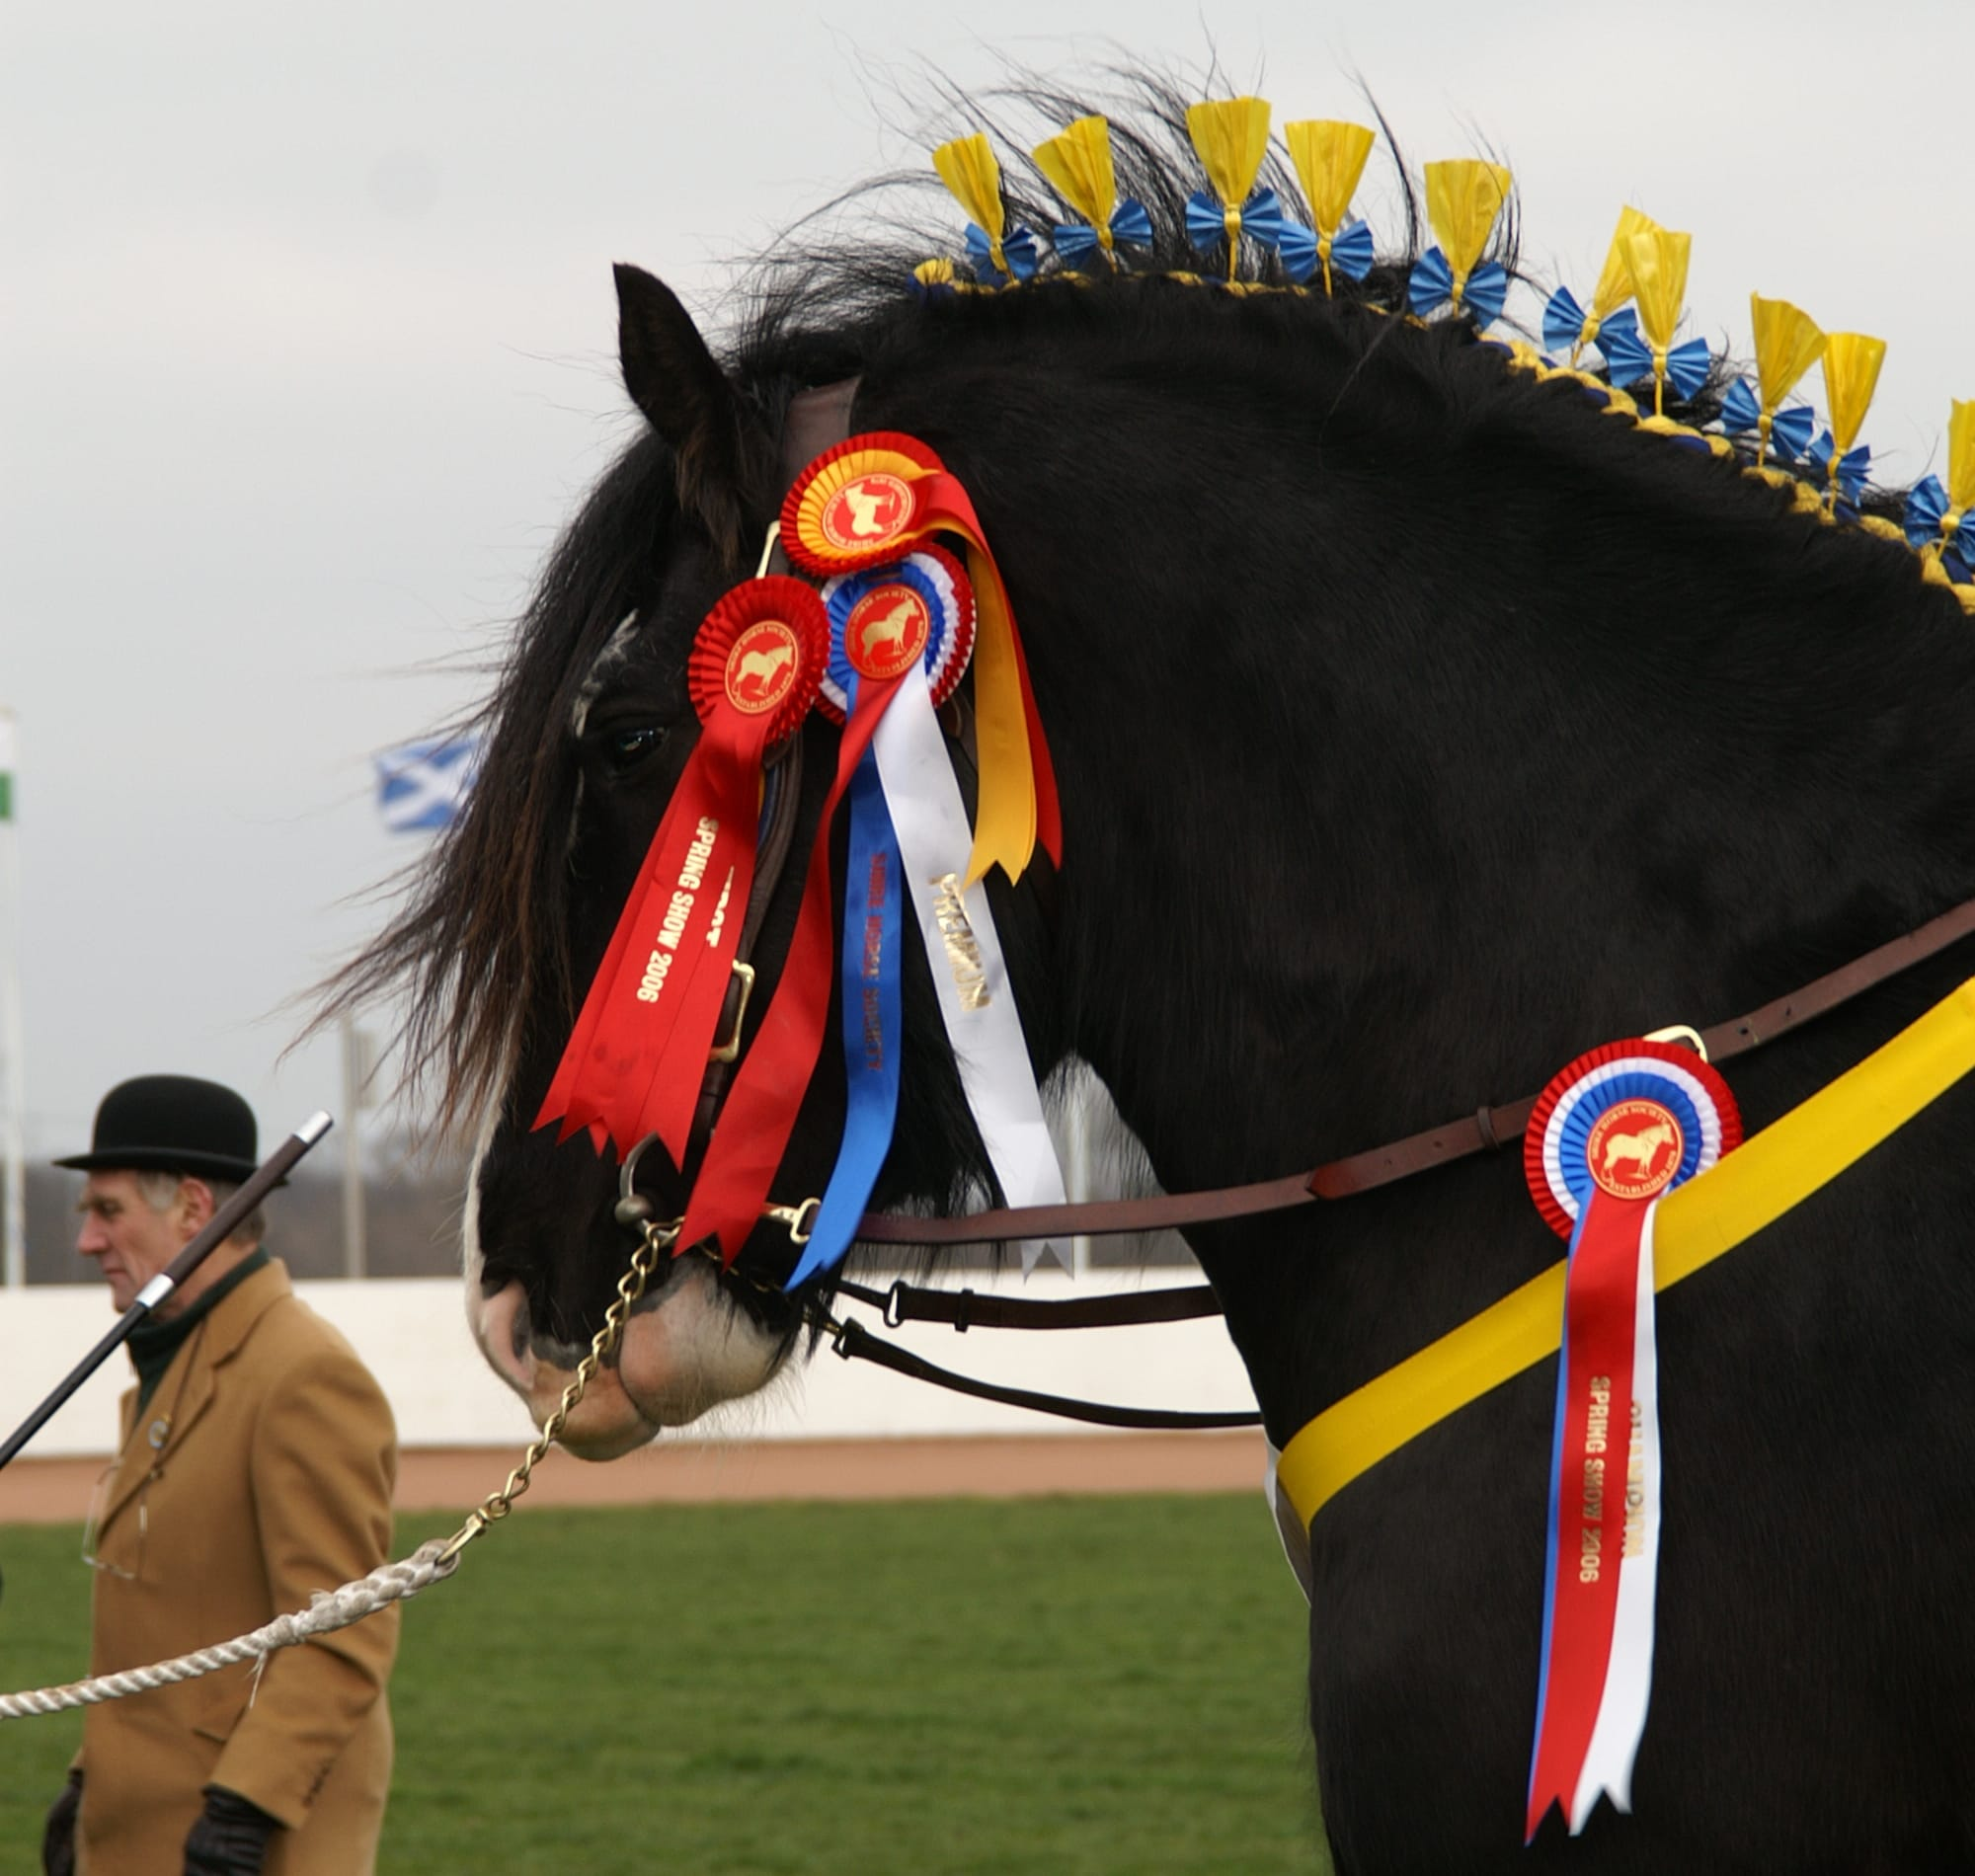 The Biggest and Most Beautiful Horses in the World